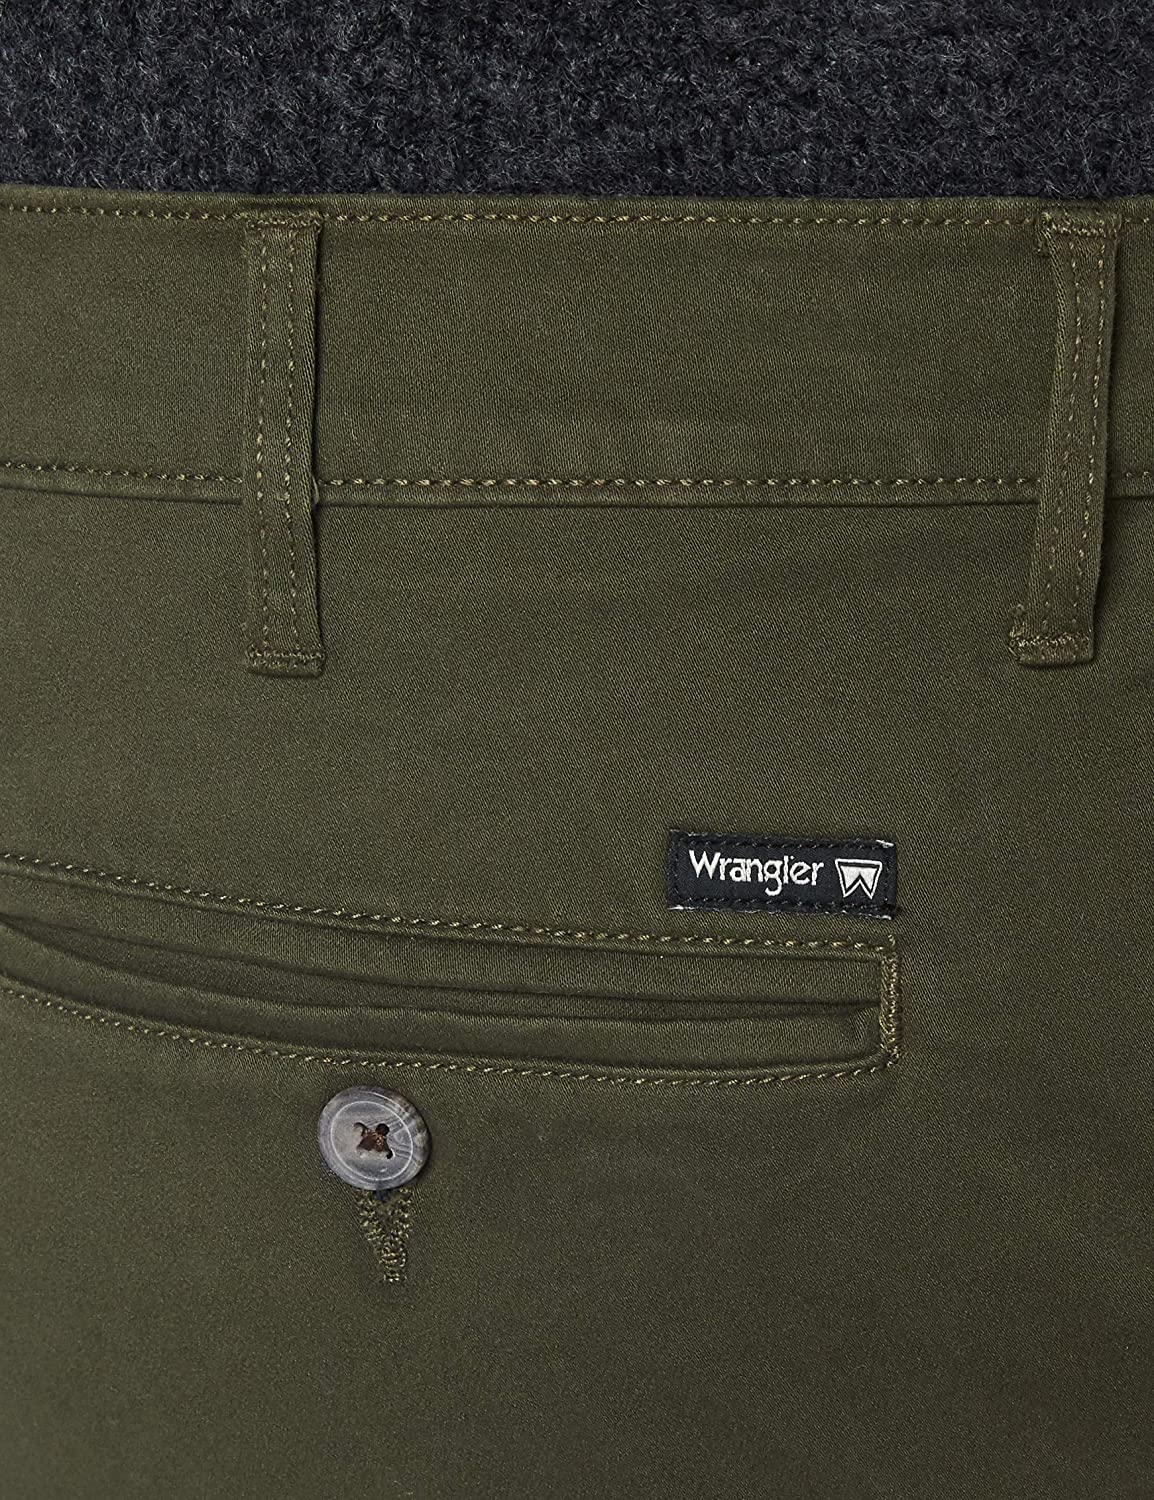 Wrangler Men's Chino' Trouser Green (Ivy Green)